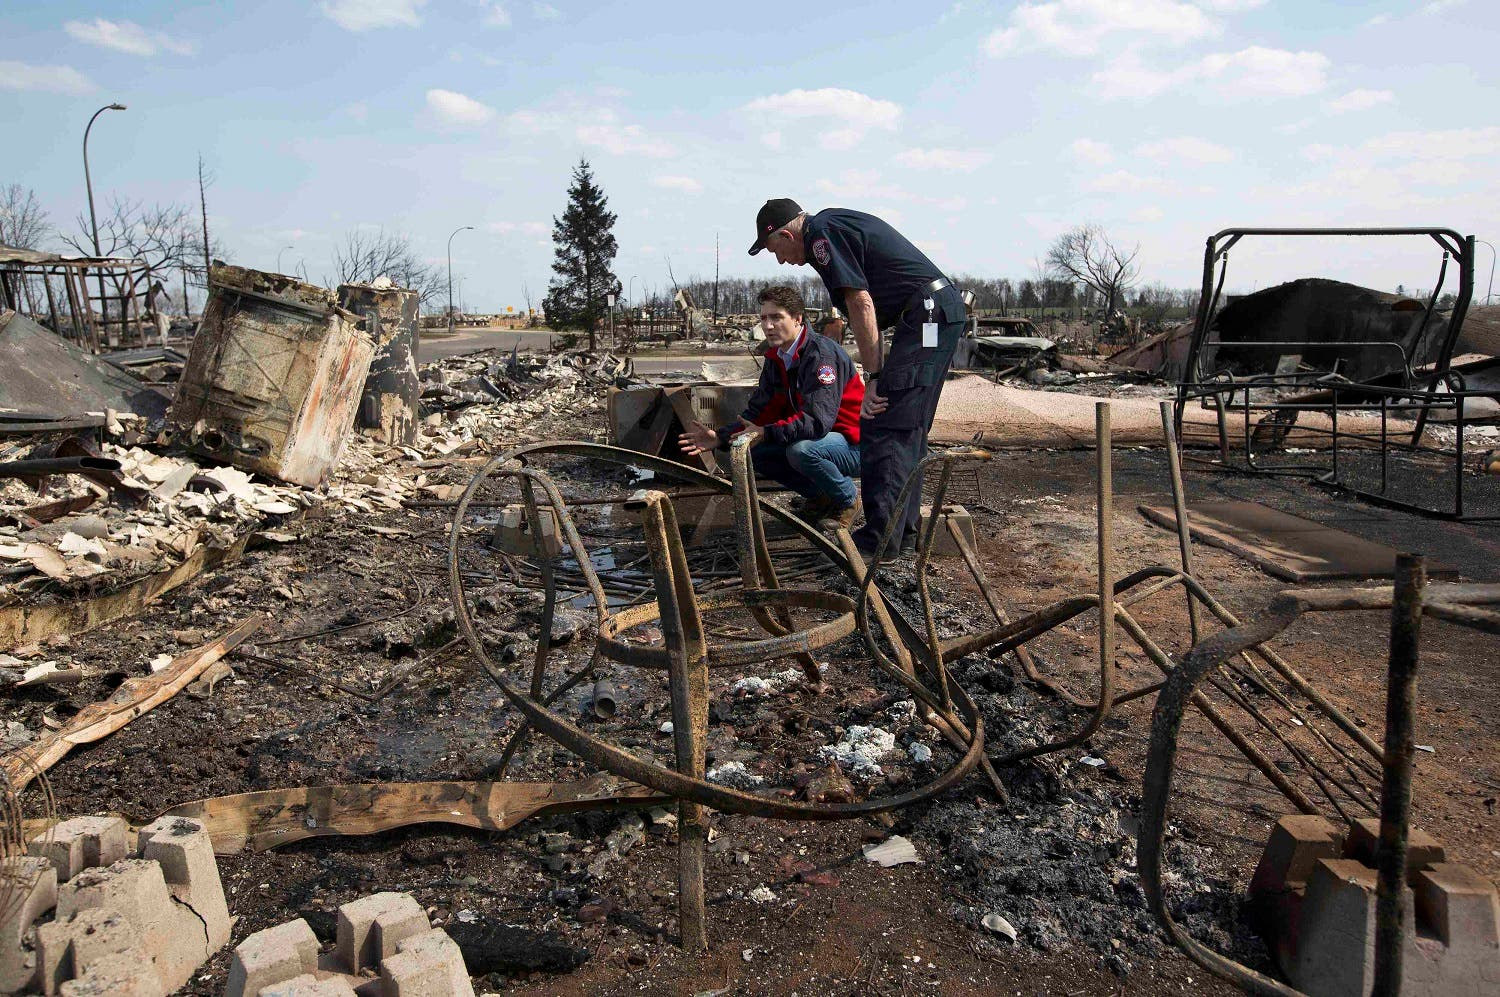 Prime Minister Justin Trudeau (L) and Fort McMurray Fire Chief Darby Allen look over the devastation after a wildfire during a visit to Fort McMurray, Alberta, Canada, May 13, 2016. REUTERS